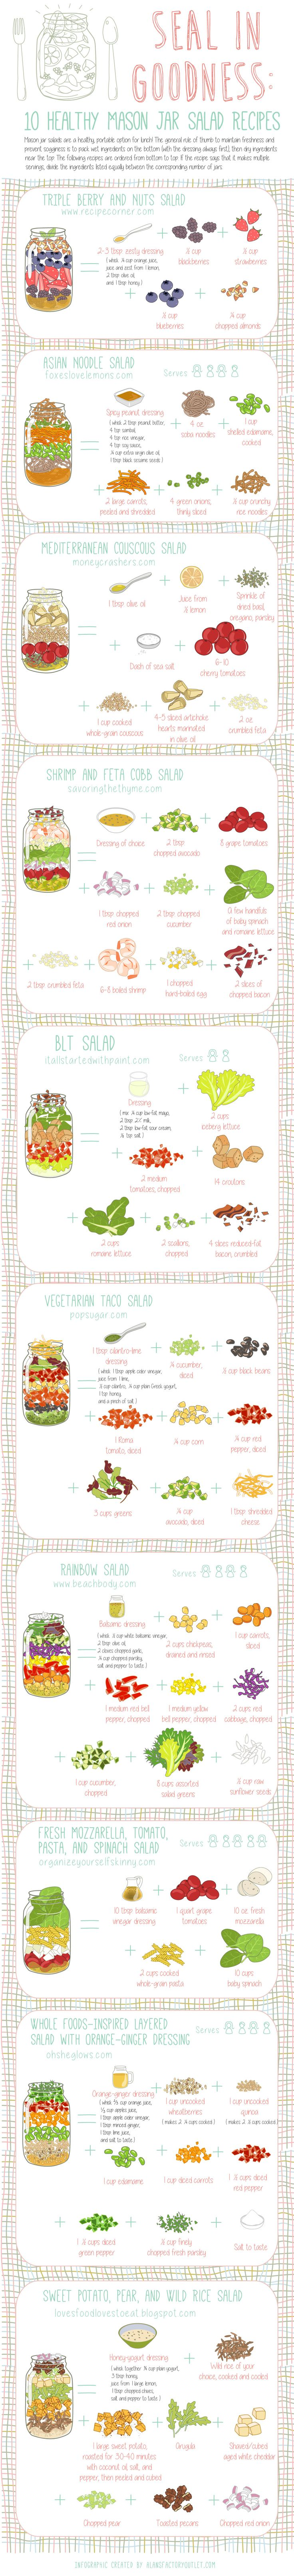 10 healthy mason jar salad recipes!